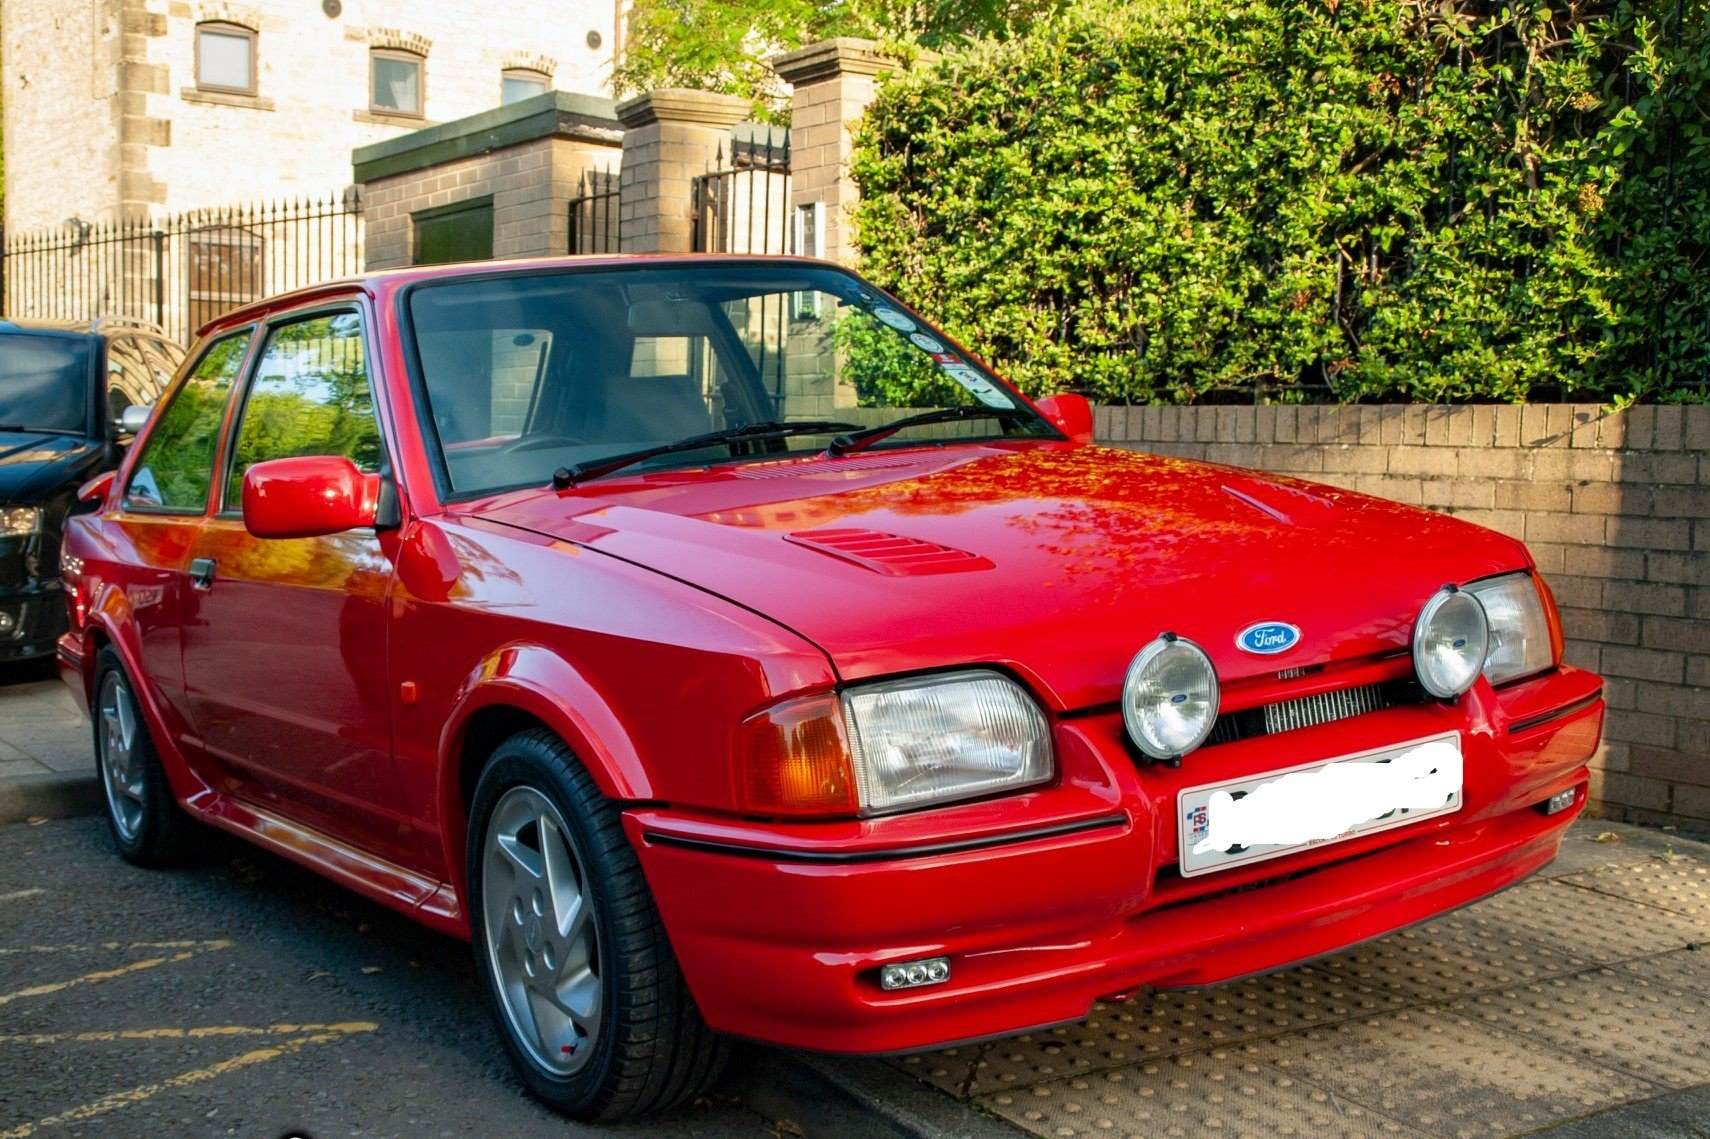 1989 Ford Escort RS Turbo S2 For Sale (picture 1 of 6)